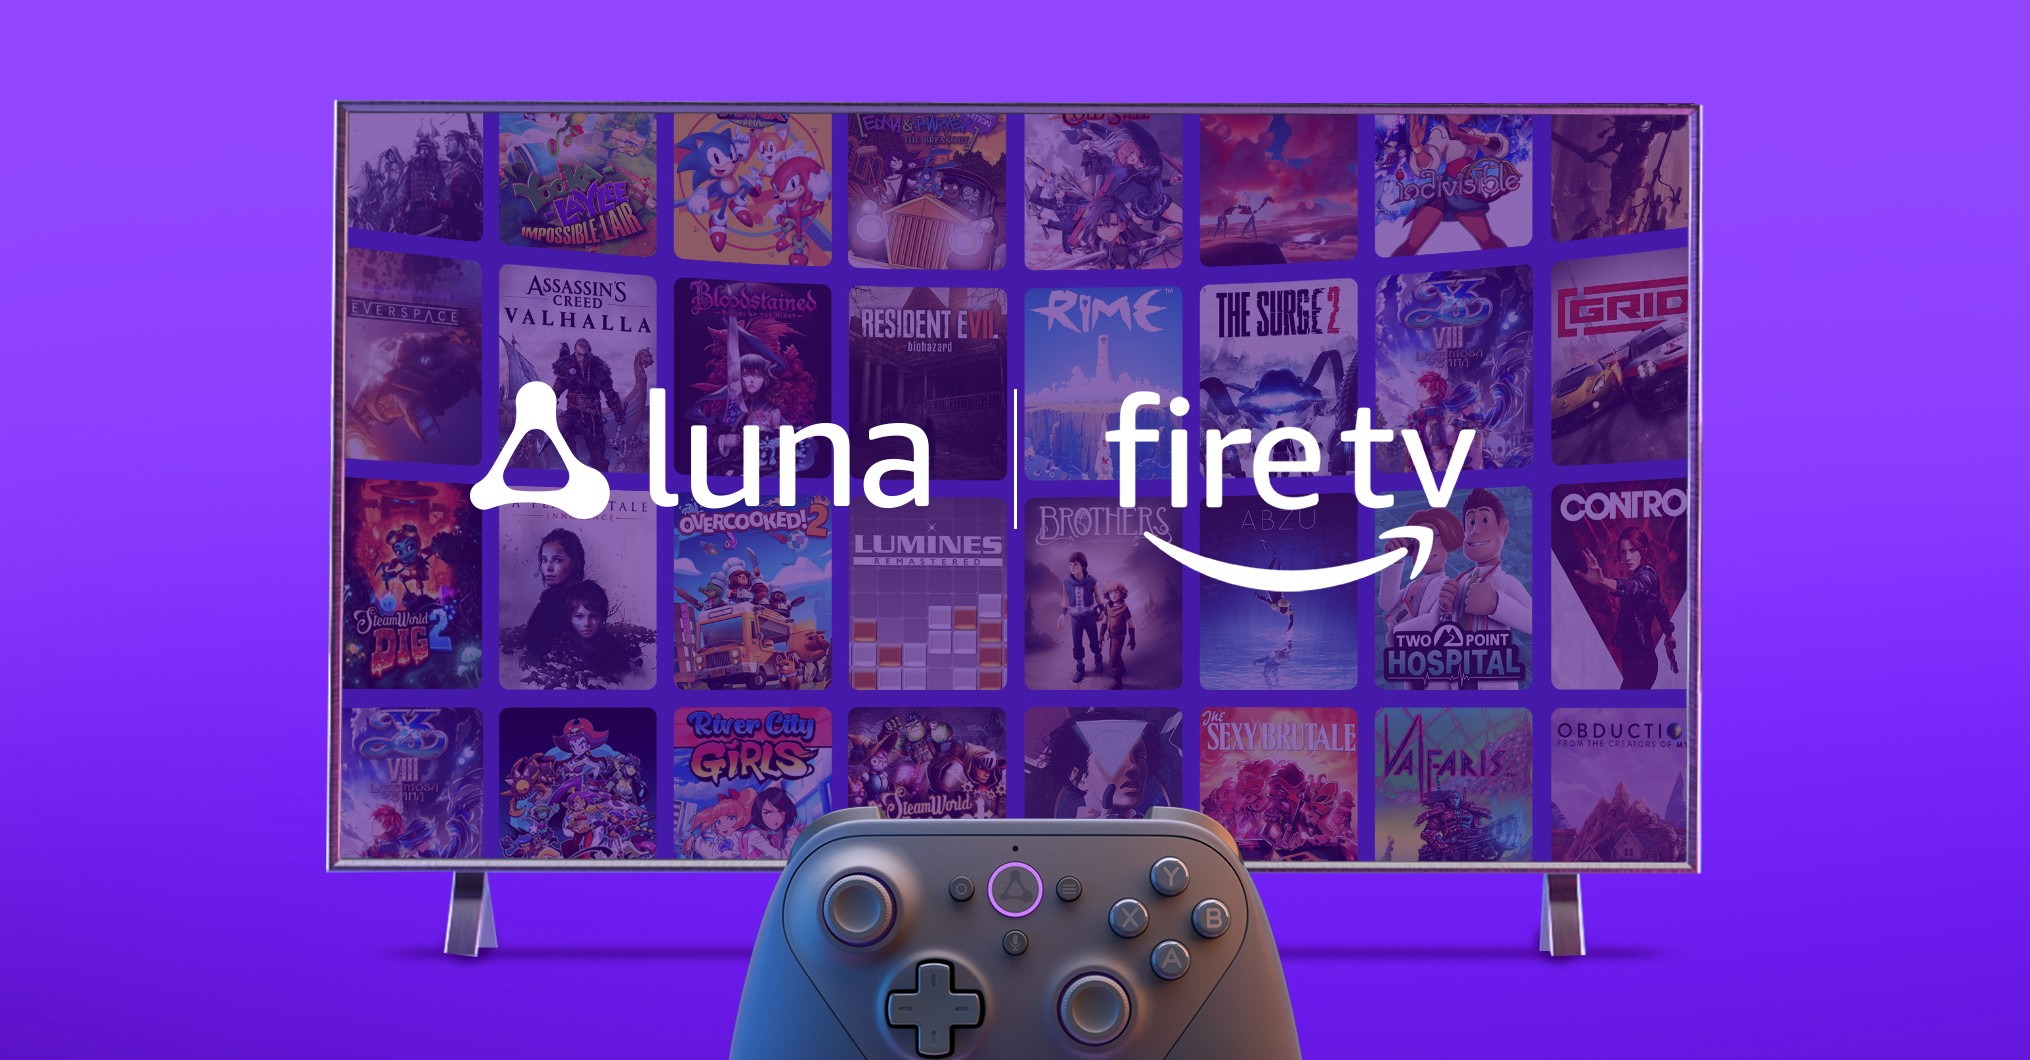 Anyone with a Fire TV can sign up for Amazon's Luna game-streaming service now thumbnail